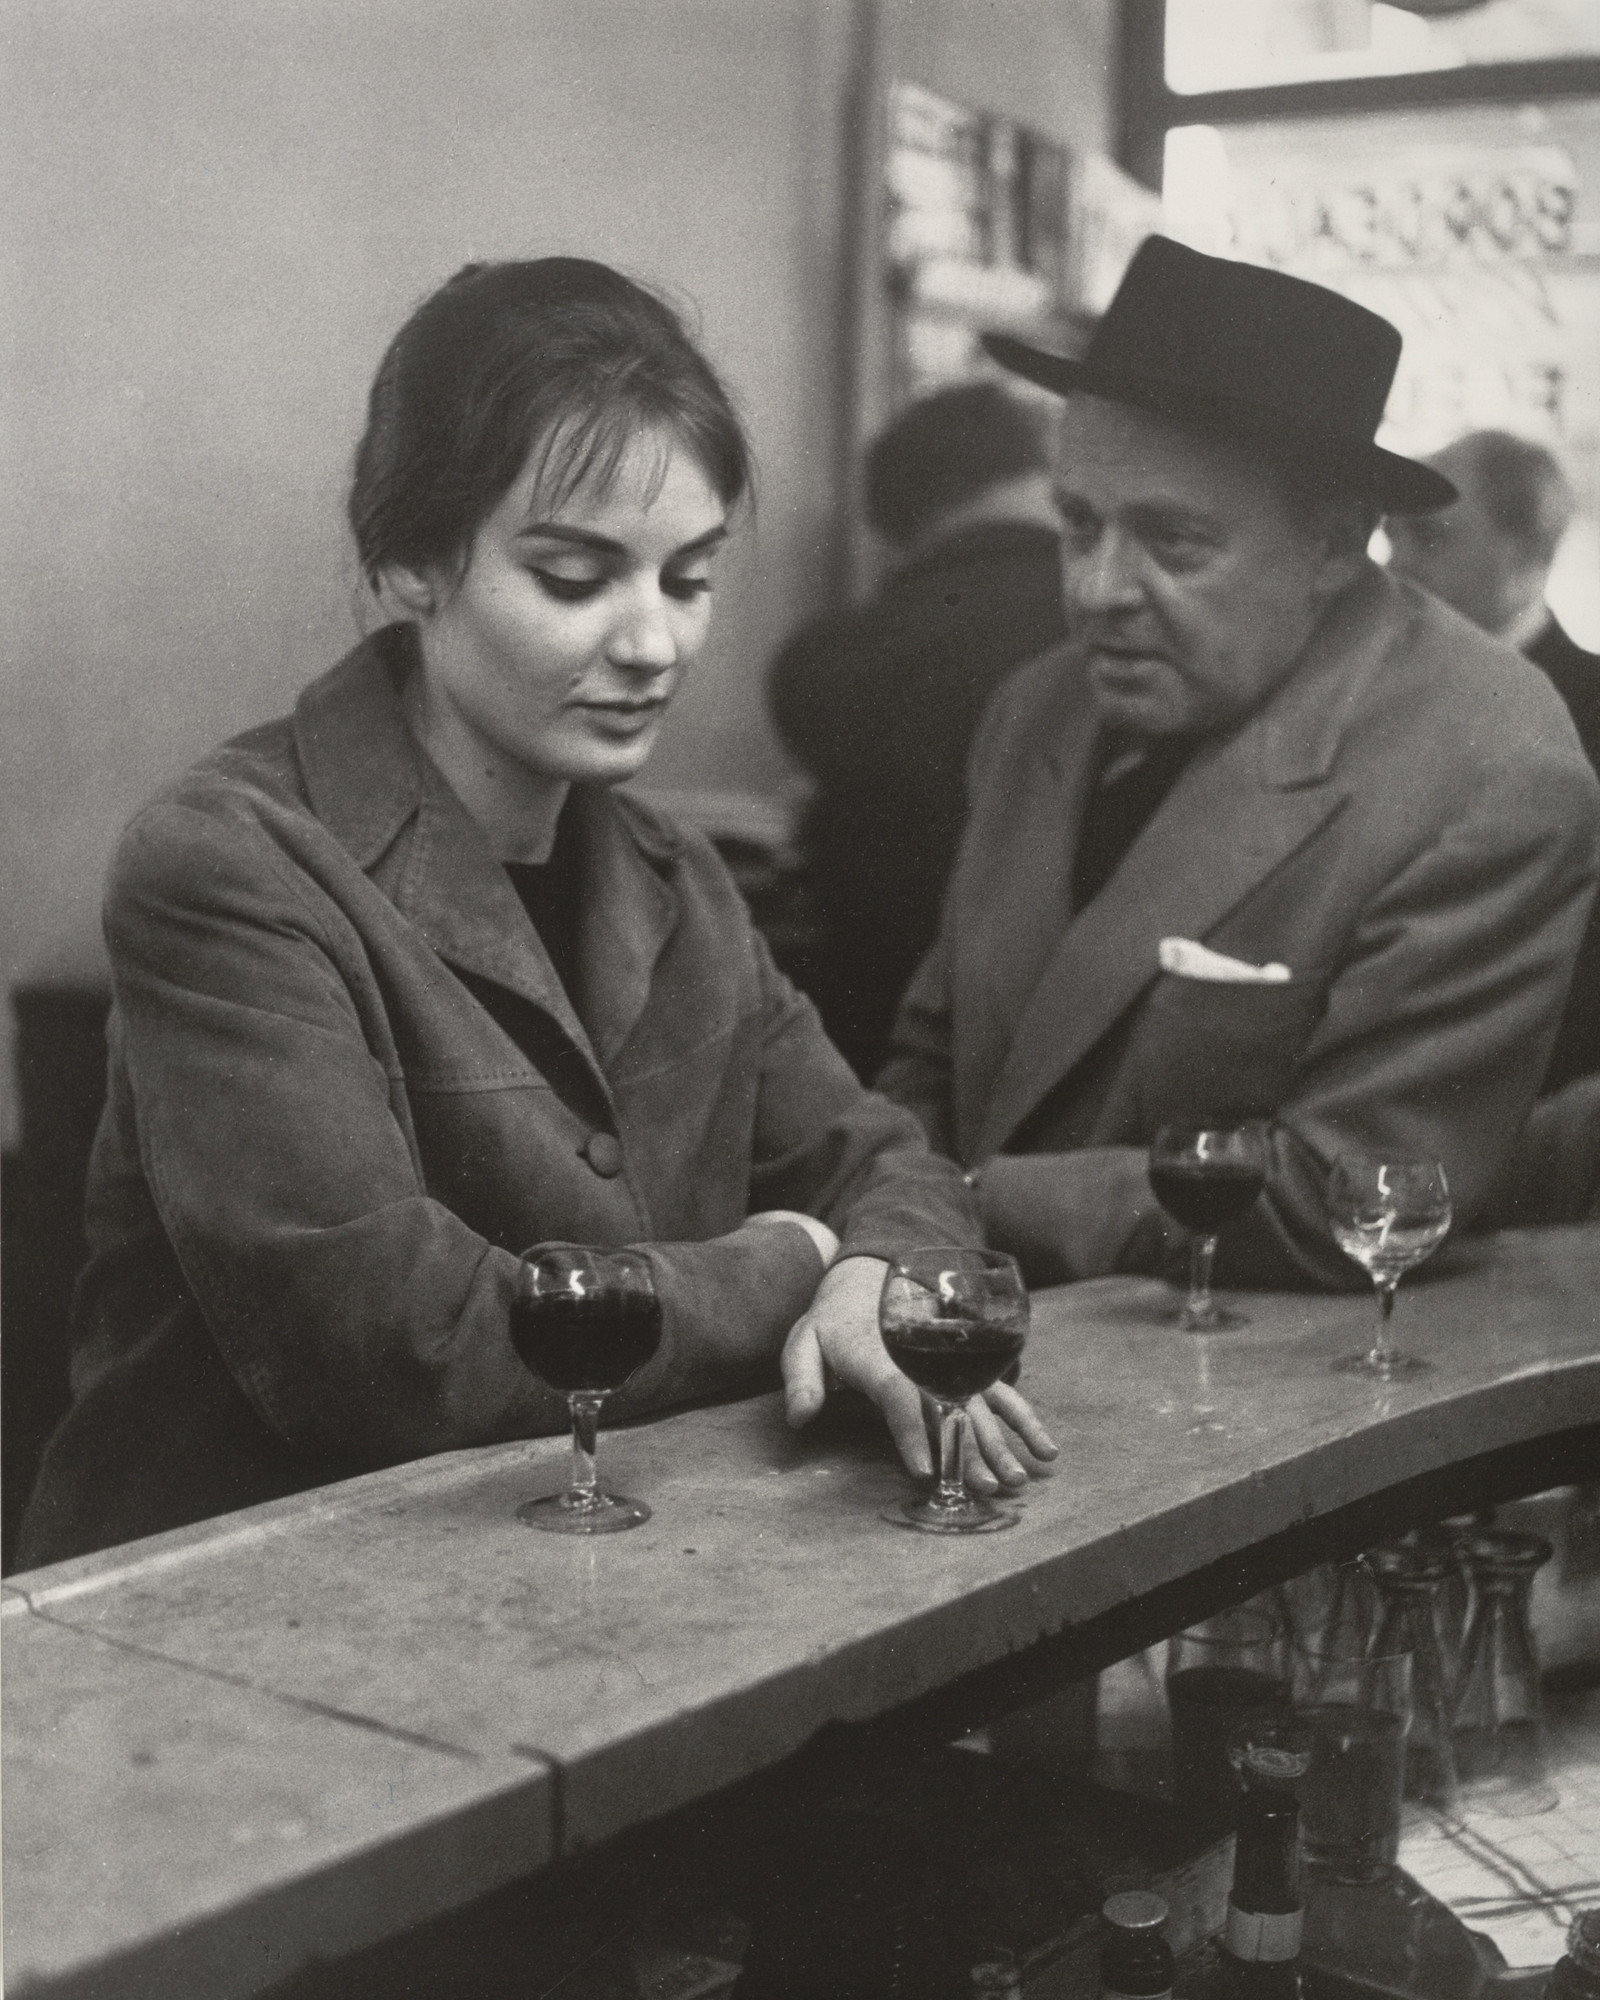 Robert Doisneau. At the Café, Chez Fraysse, Rue de Seine, Paris. 1958